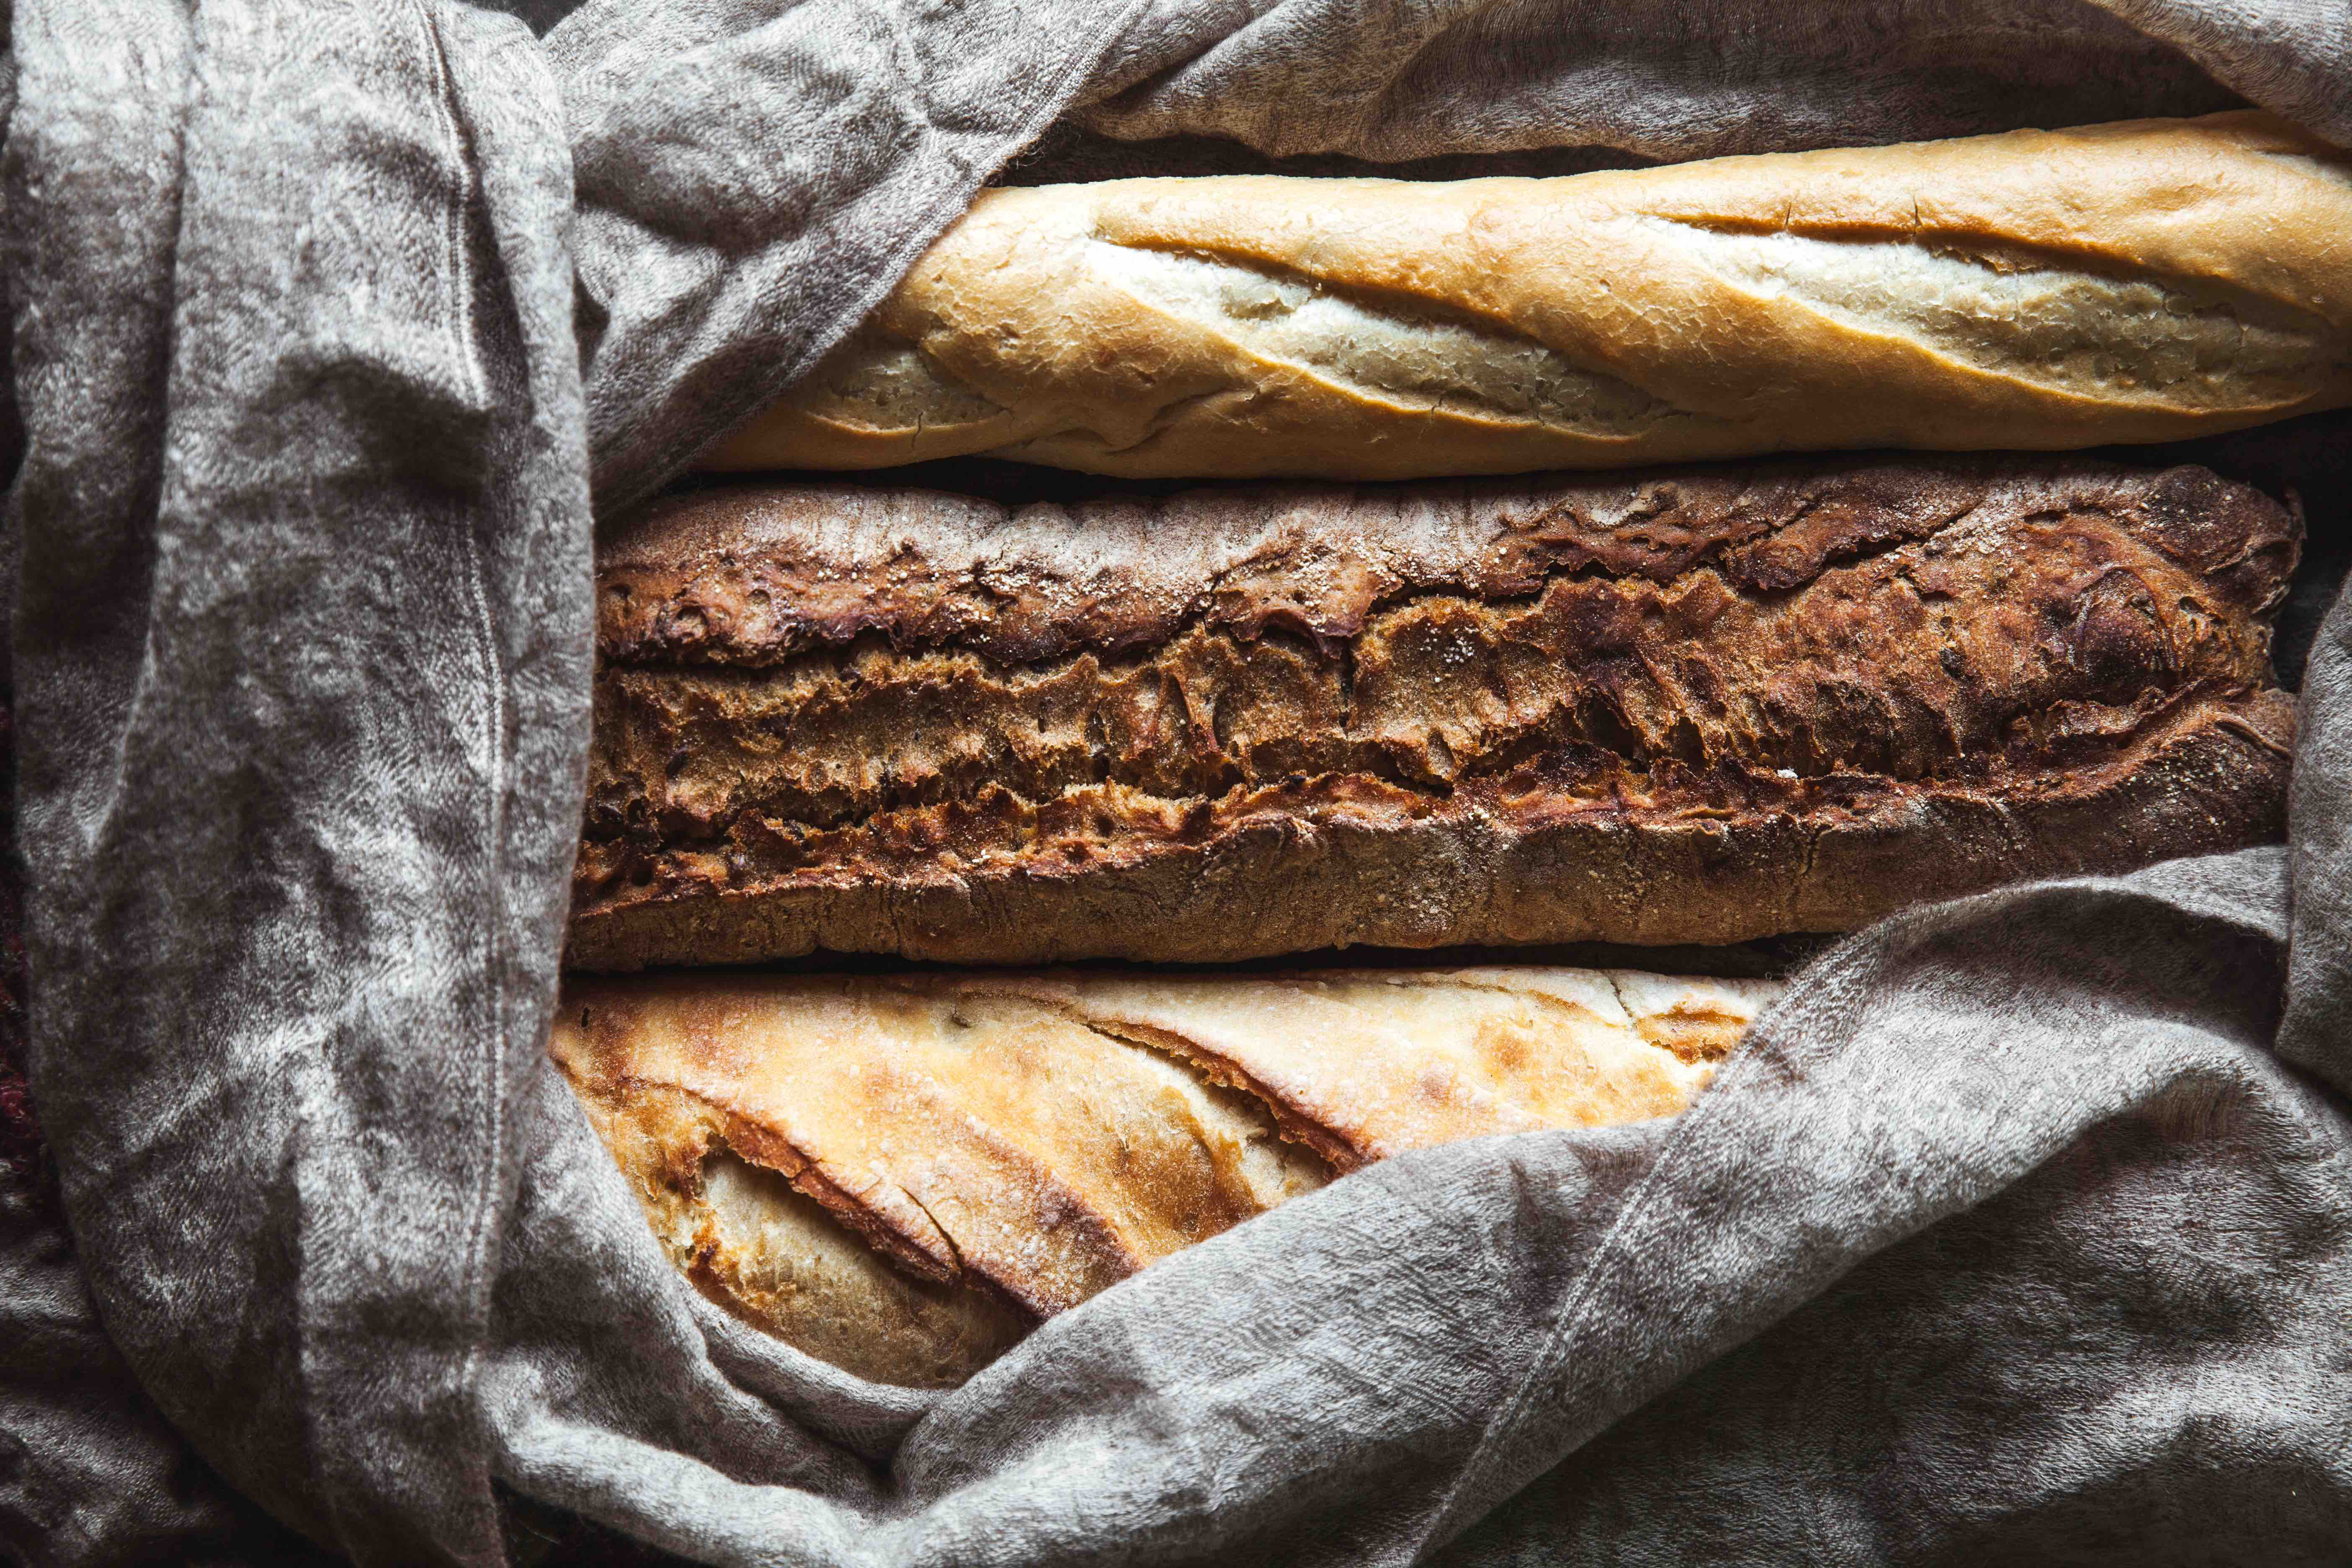 baguettes in a blanket keeping warm for delivery